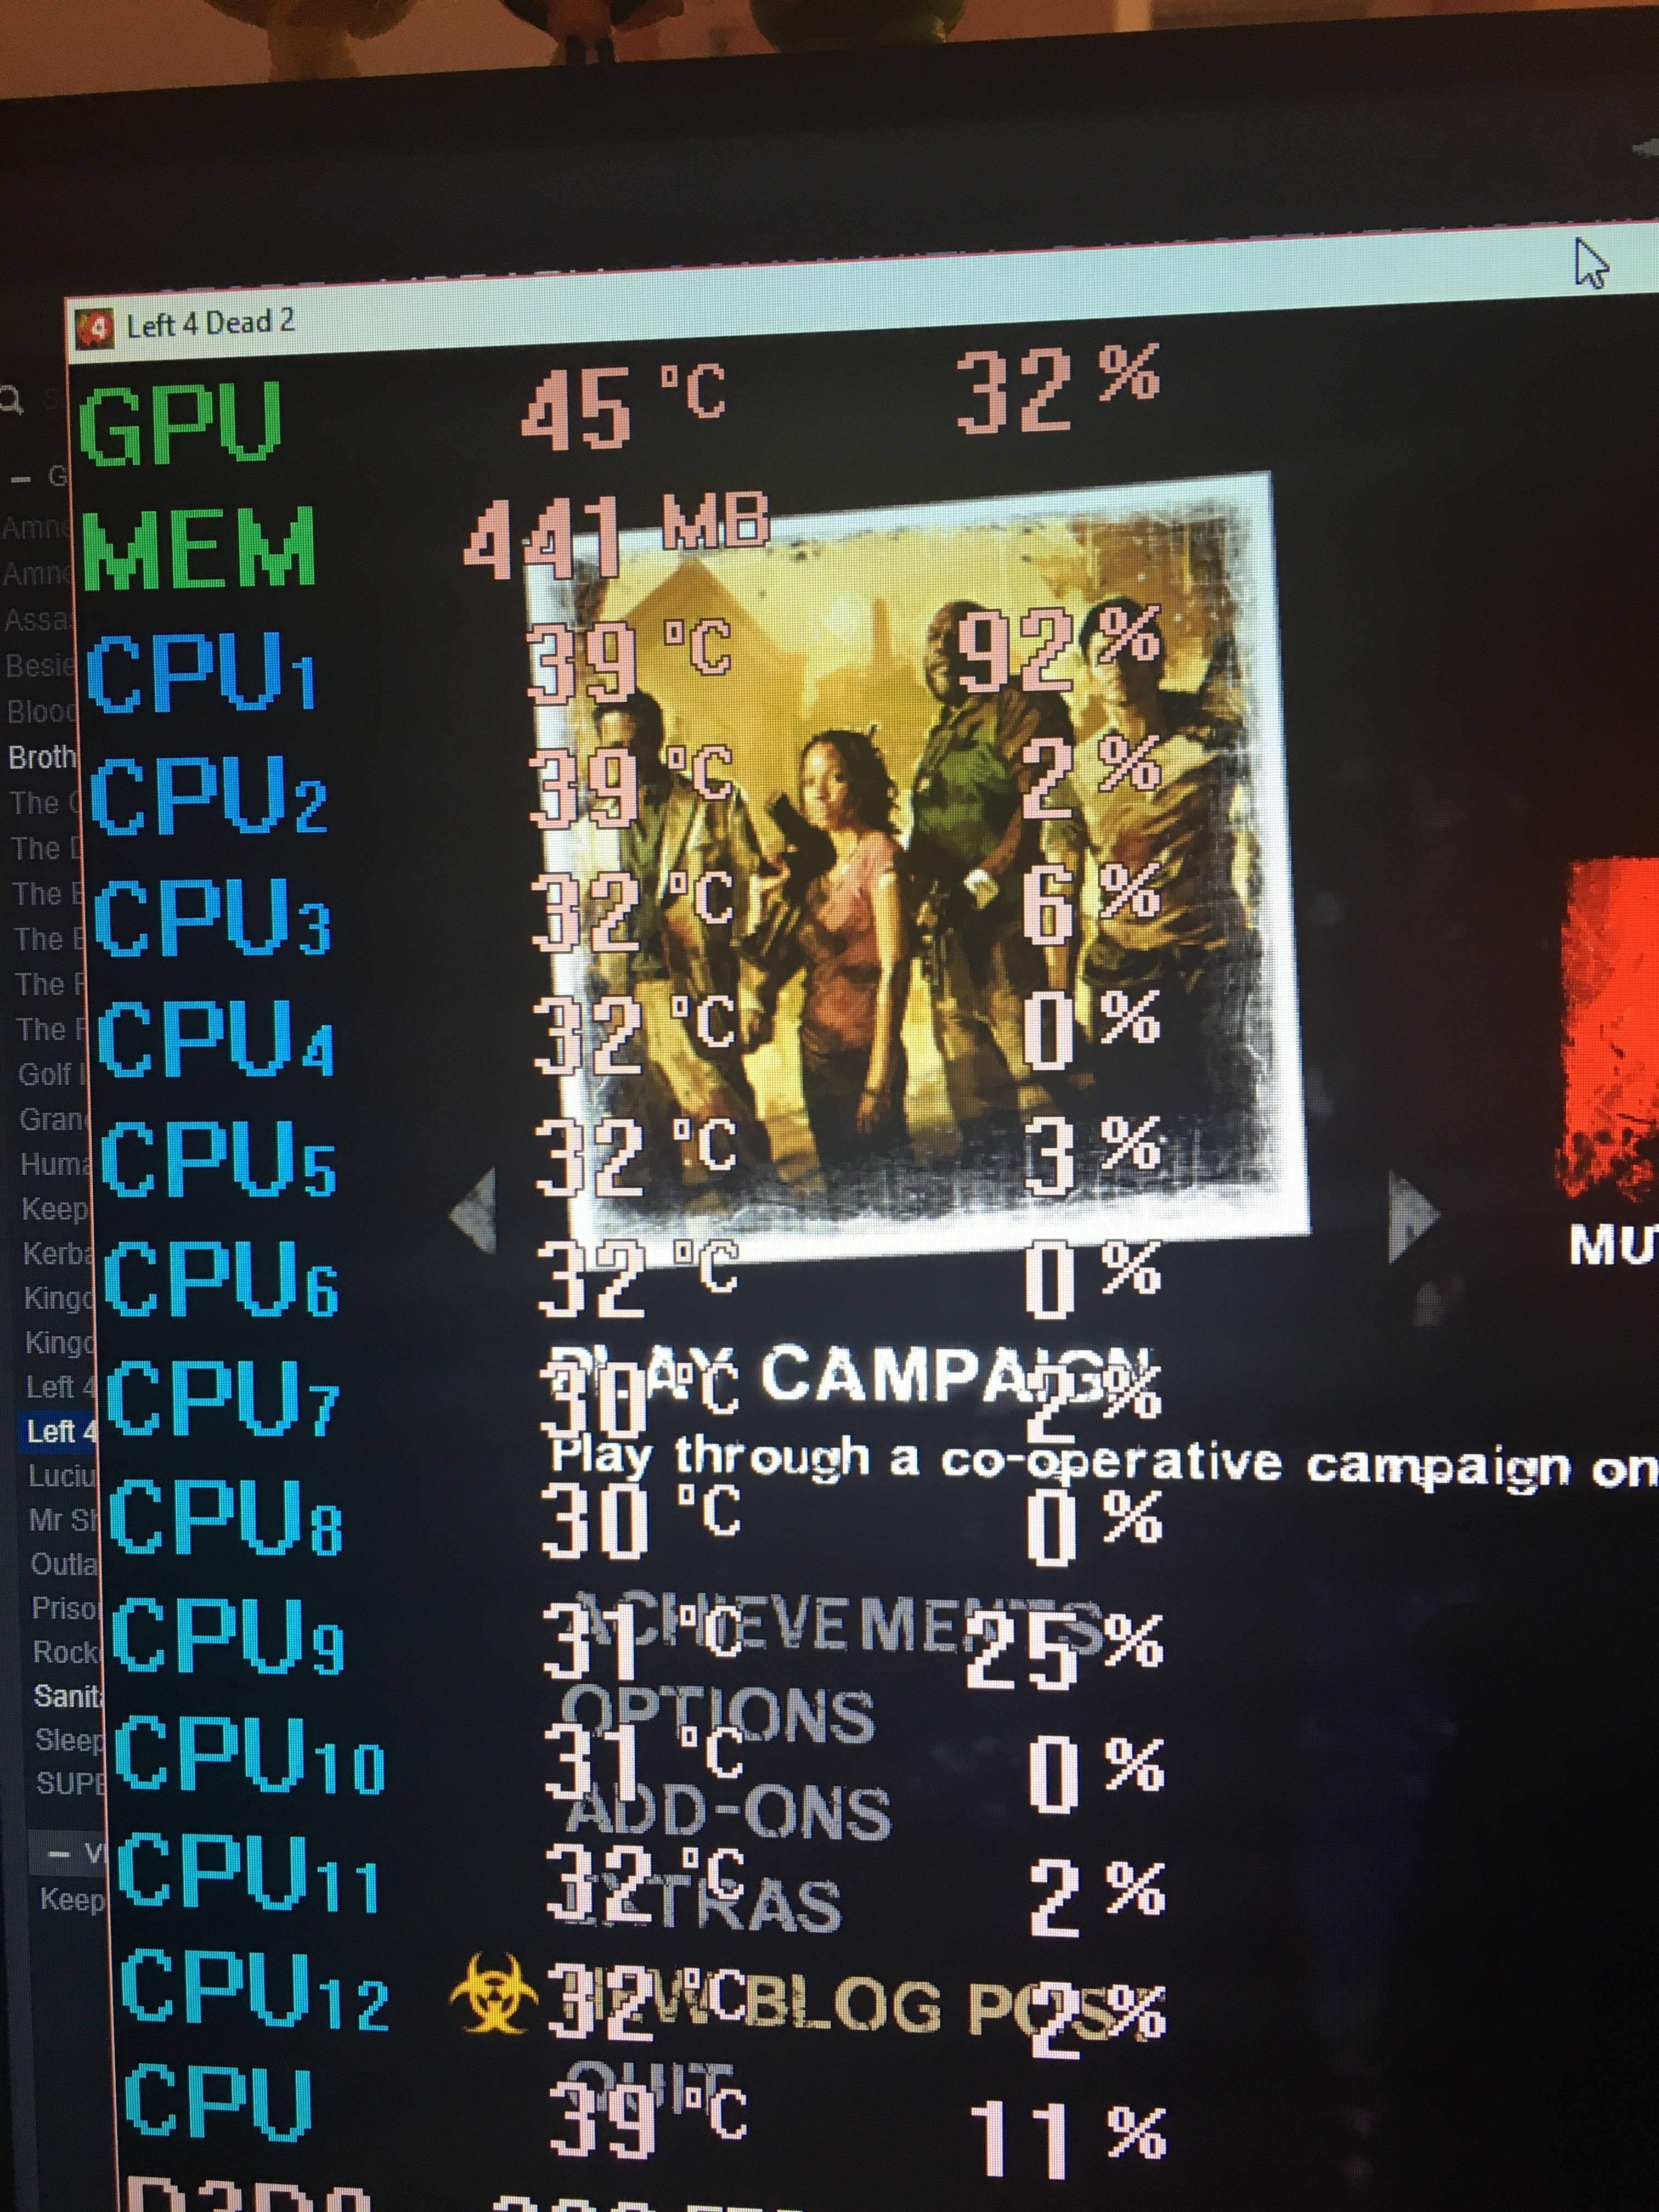 90% i7 8700k CPU usage? - CPUs, Motherboards, and Memory